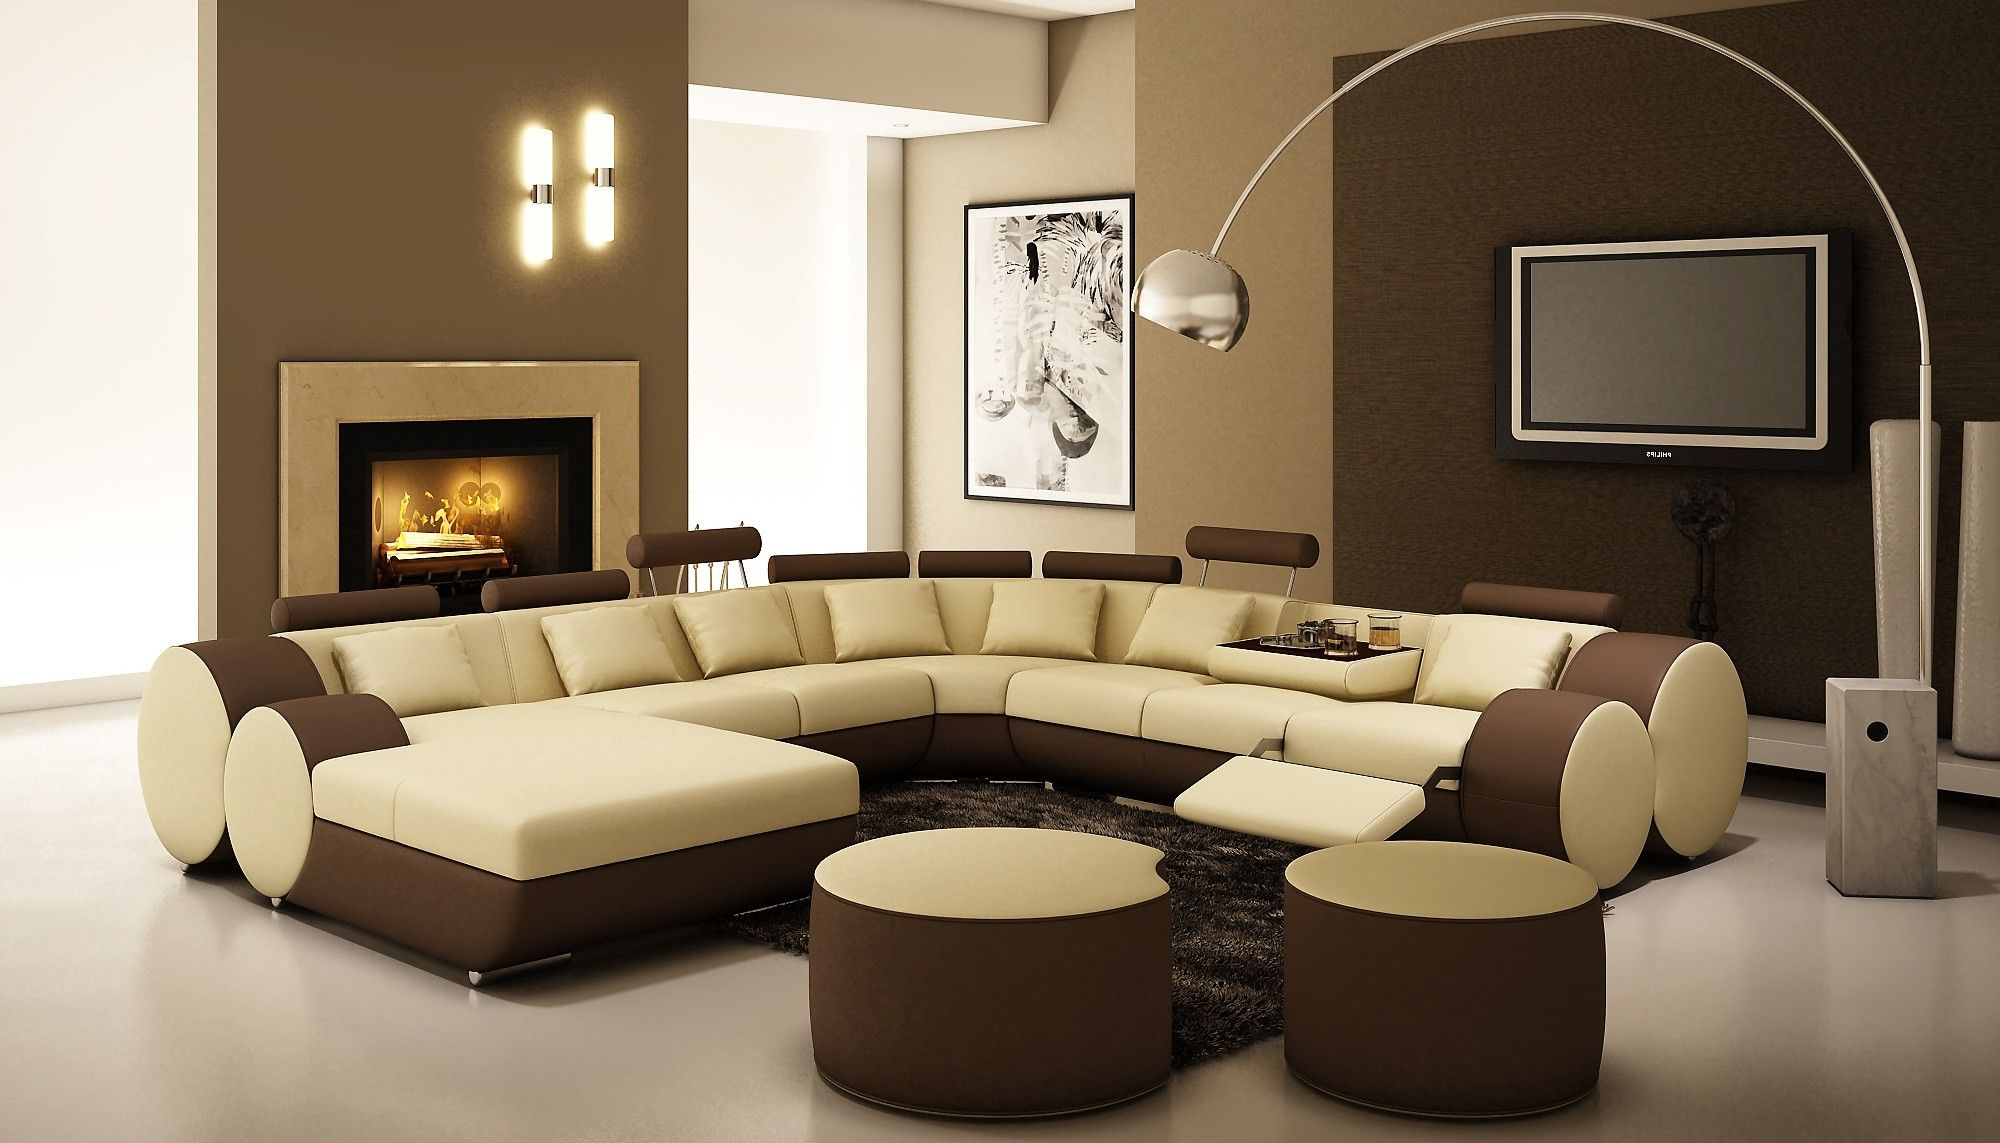 modern couch and sofa set inspiration-Best Of Couch and sofa Set Image